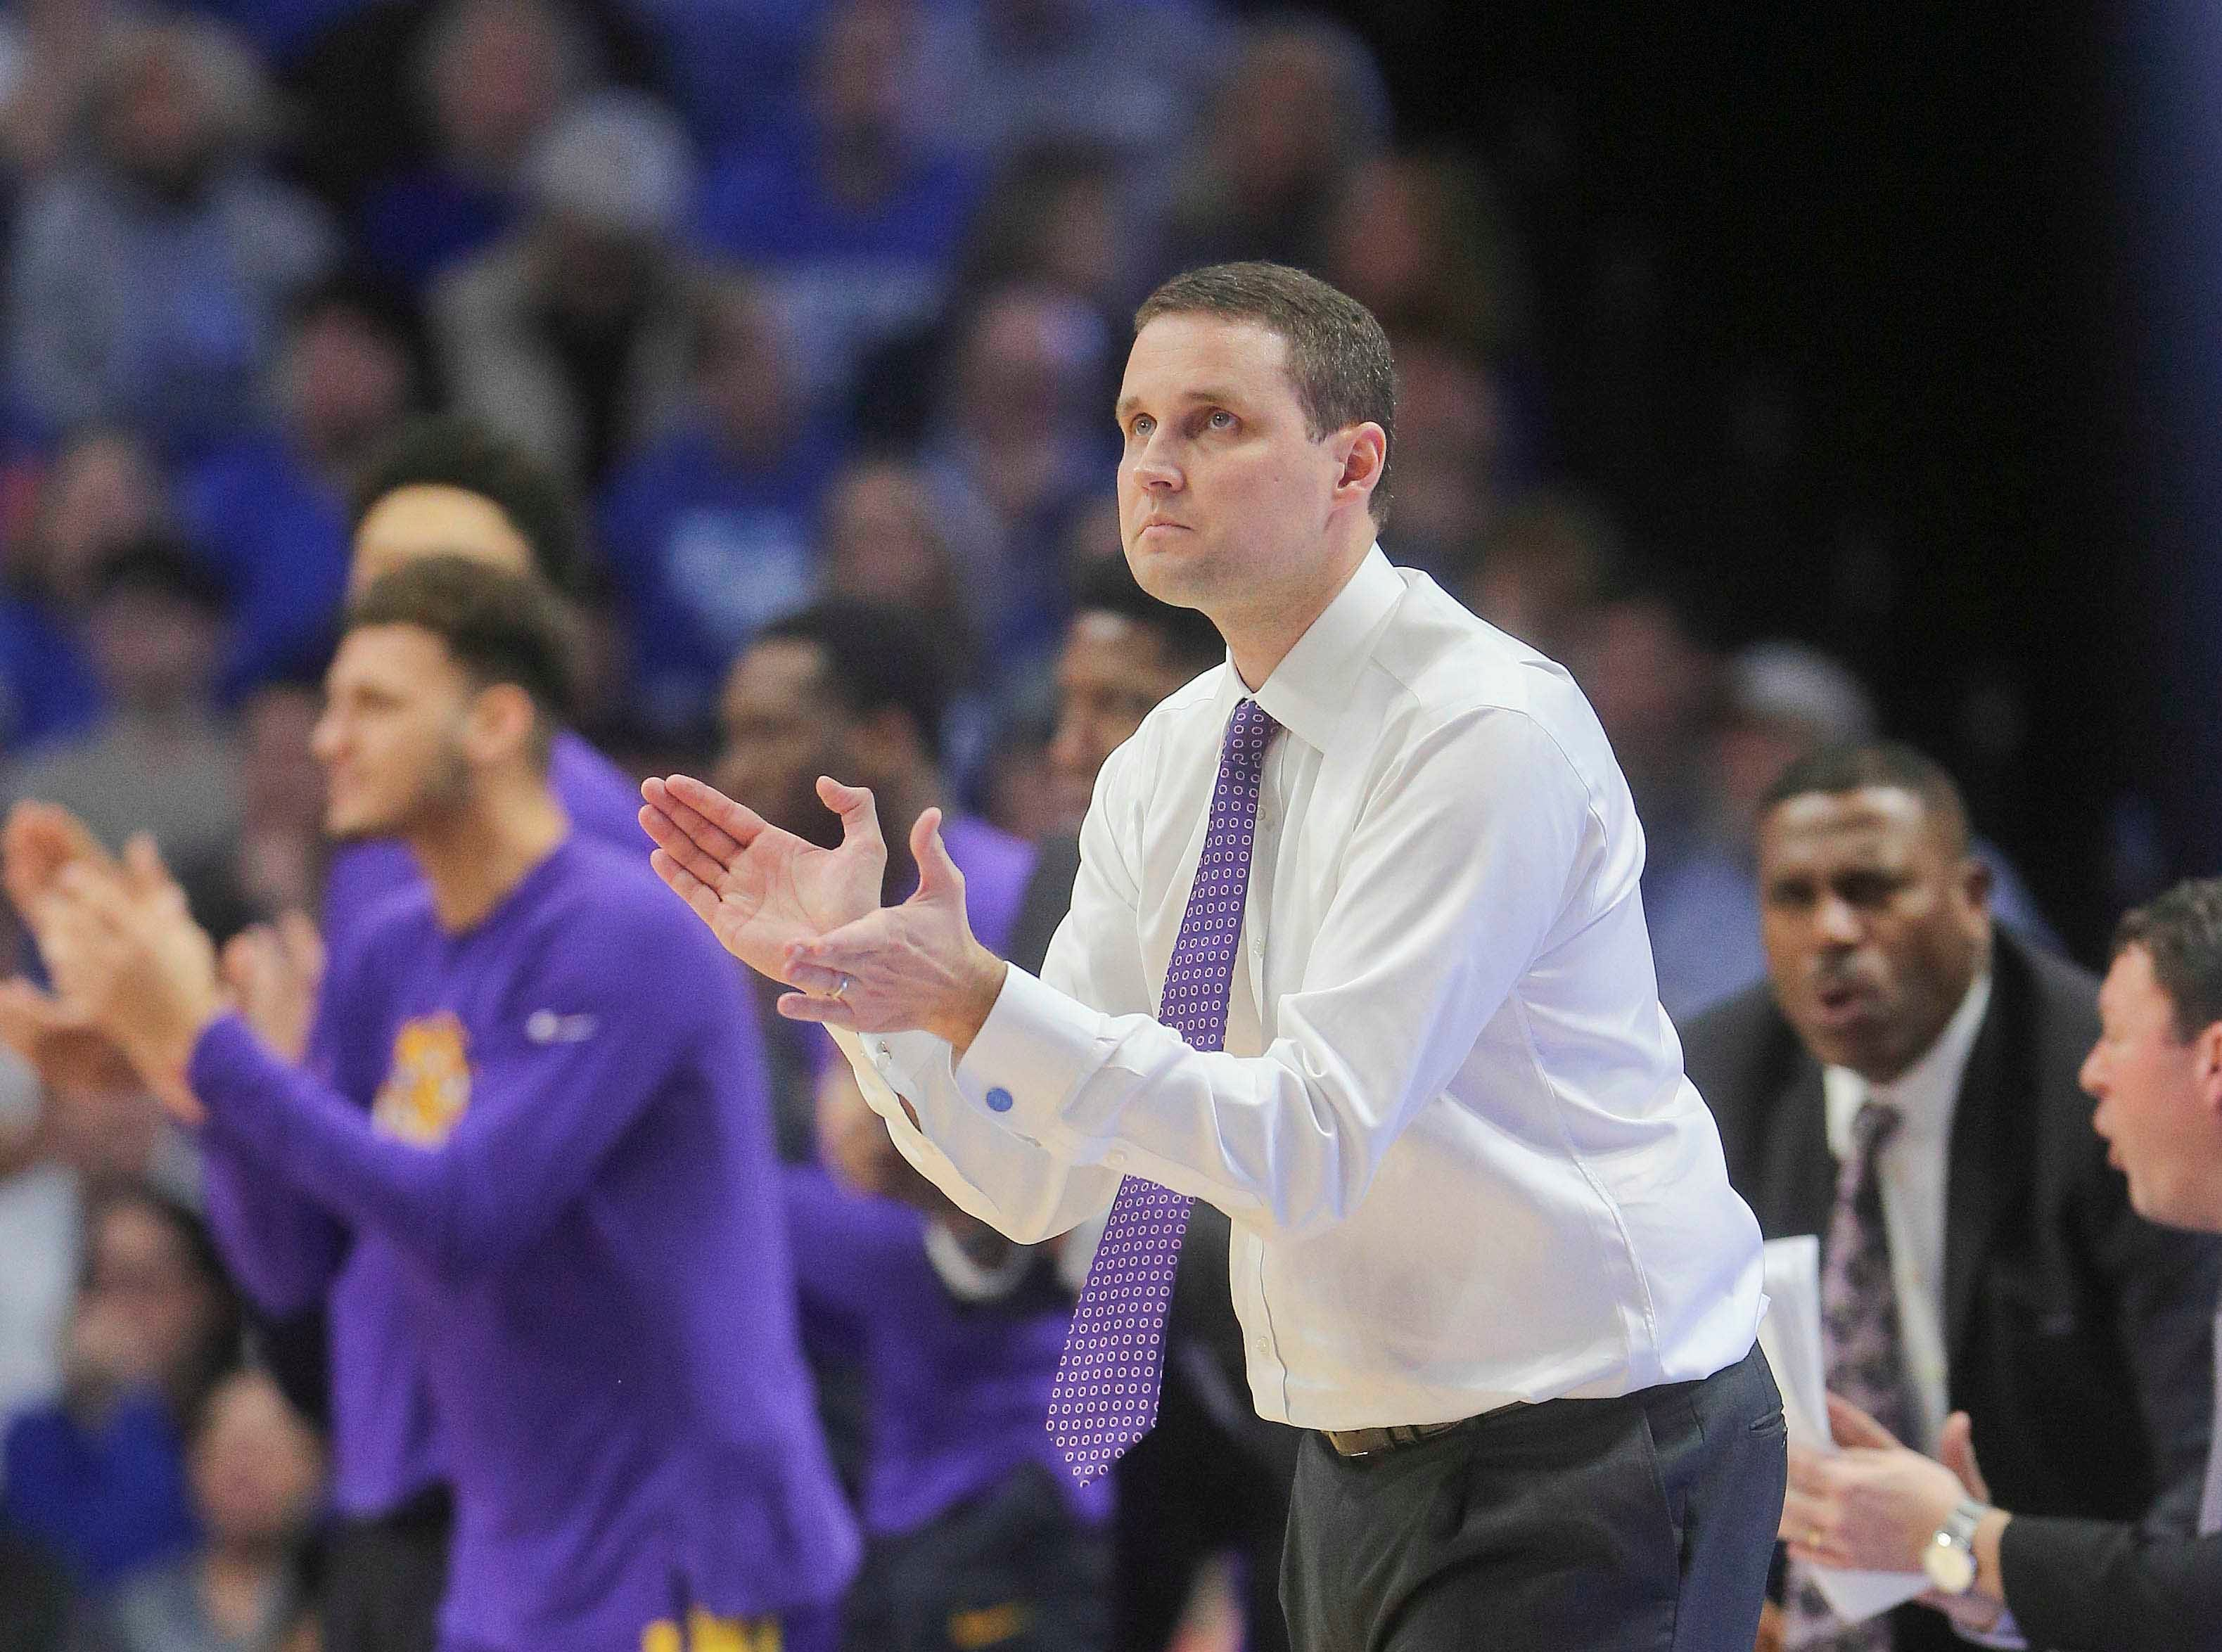 Feb 12, 2019; Lexington, KY, USA; LSU Tigers head coach Will Wade reacts during the game against the Kentucky Wildcats in the second half at Rupp Arena. Mandatory Credit: Mark Zerof-USA TODAY Sports